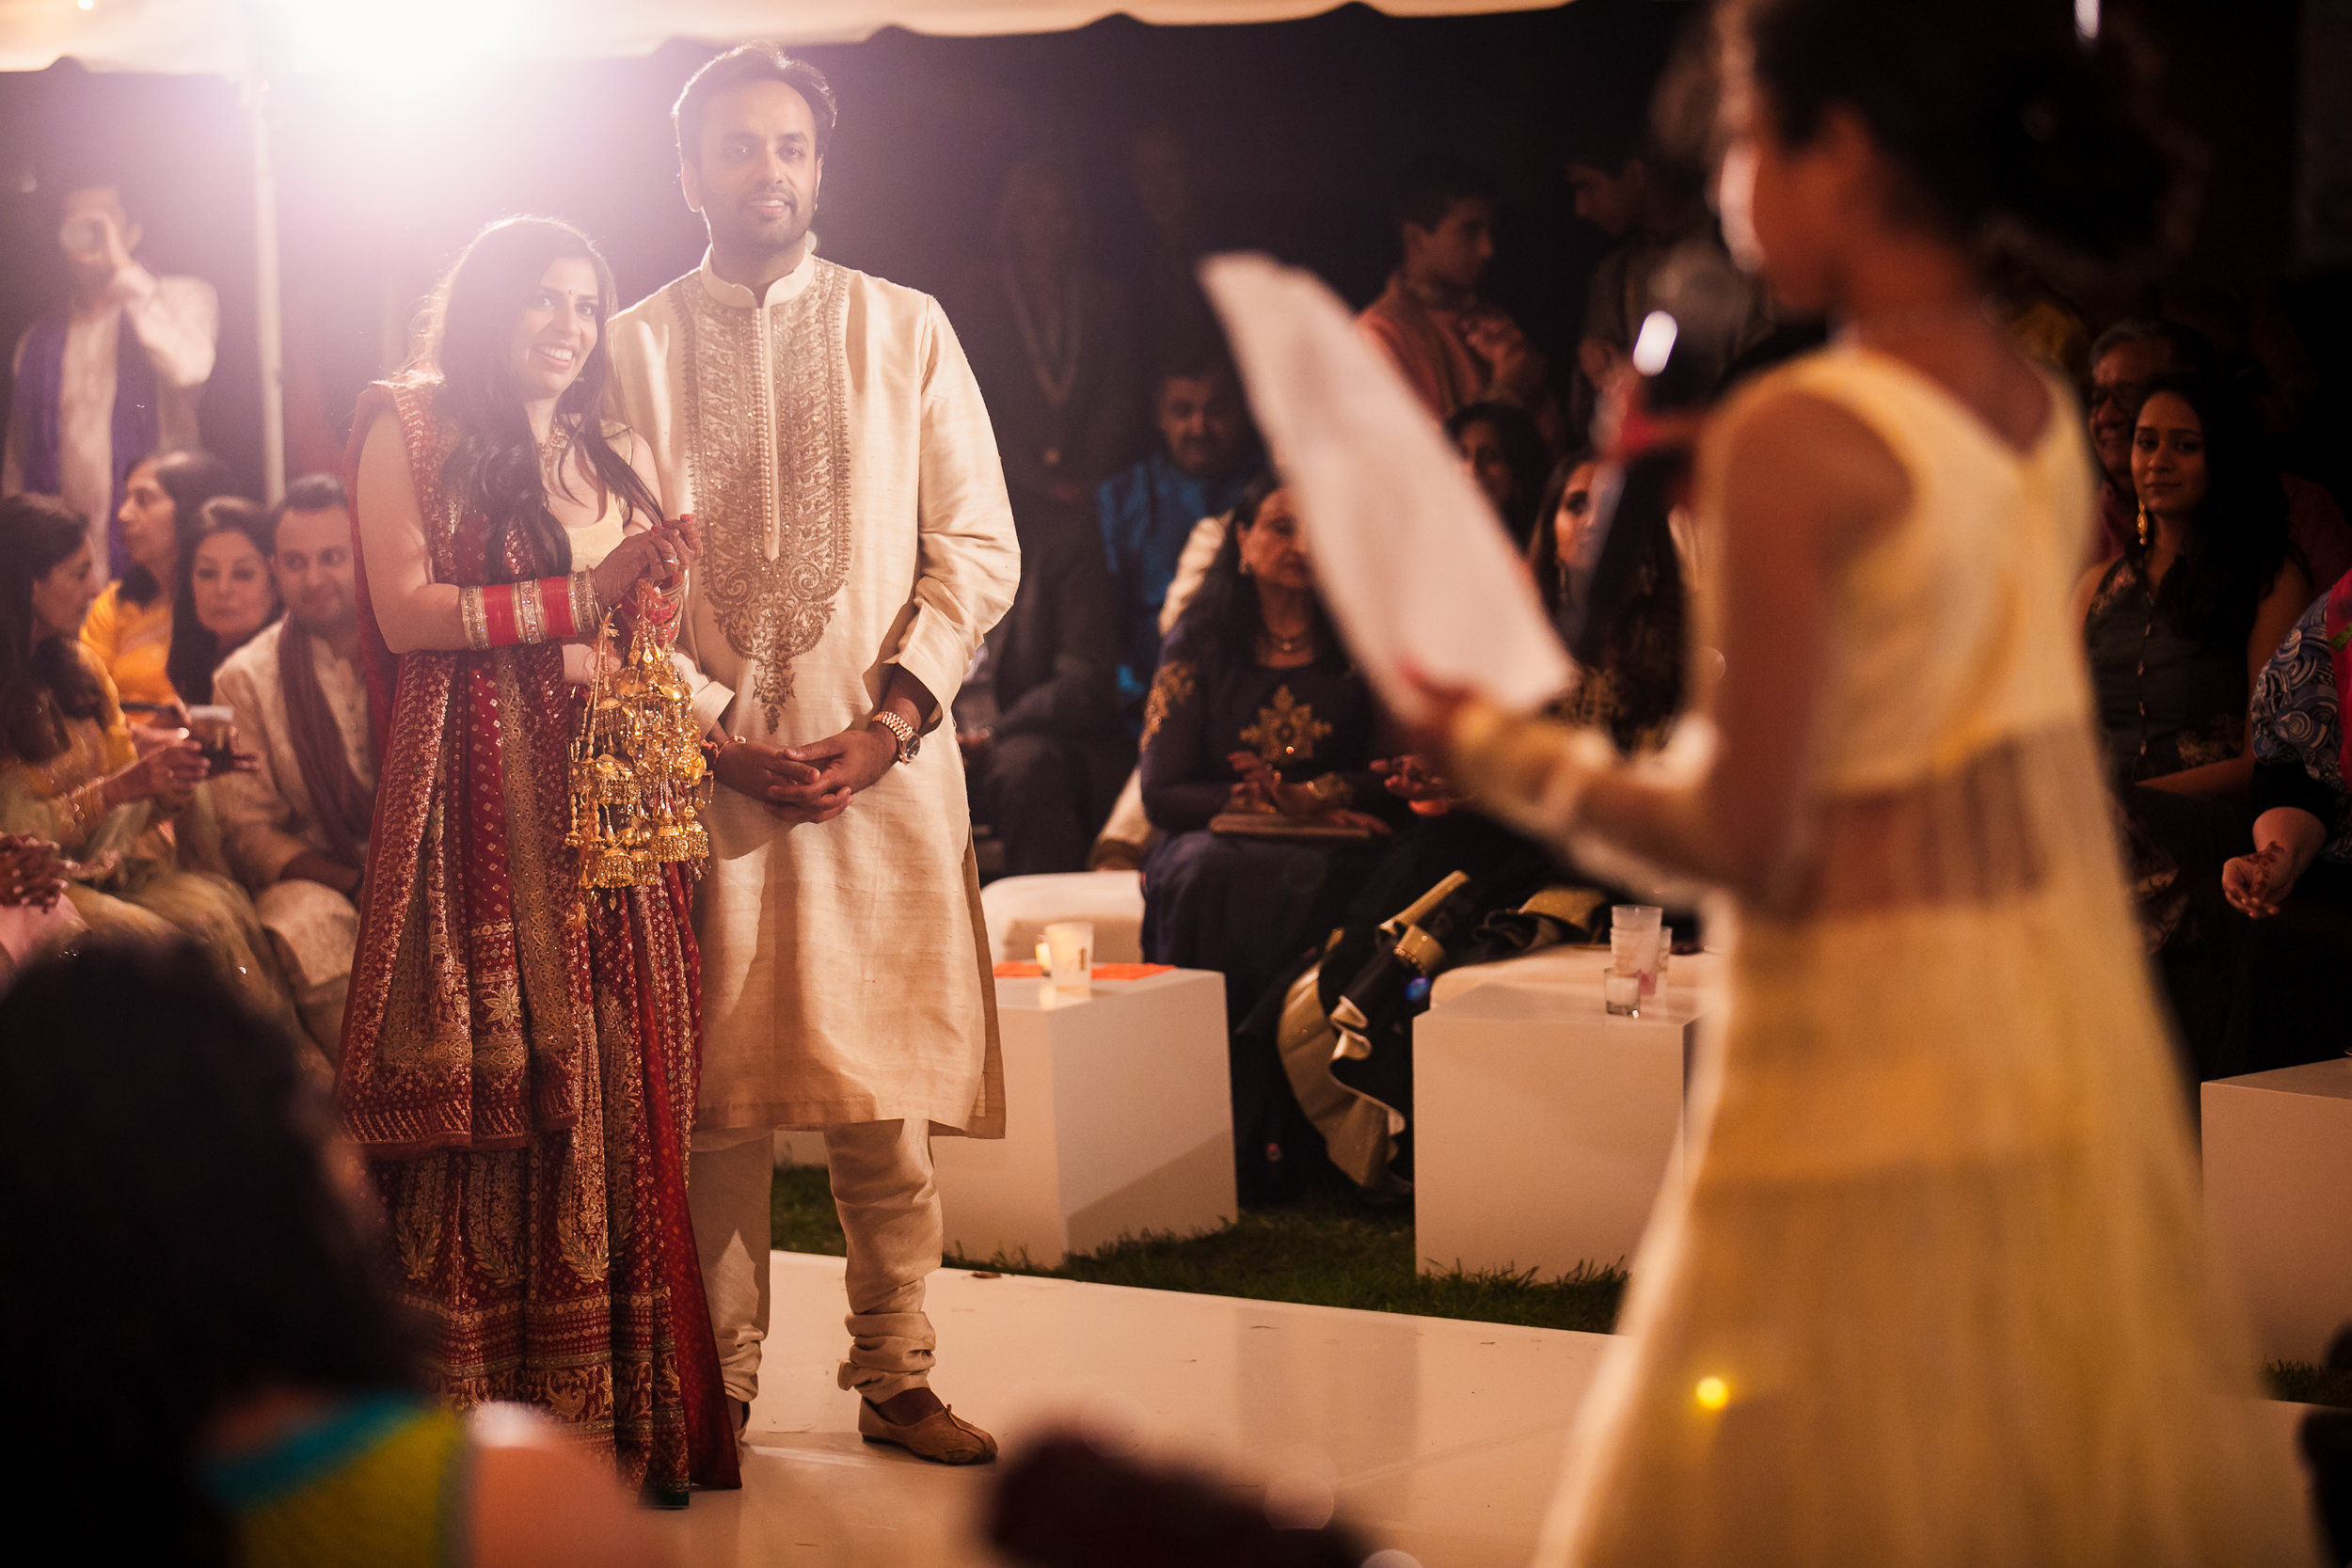 INDIAN WEDDING BRIDE AND GROOM DANCING 3.jpg